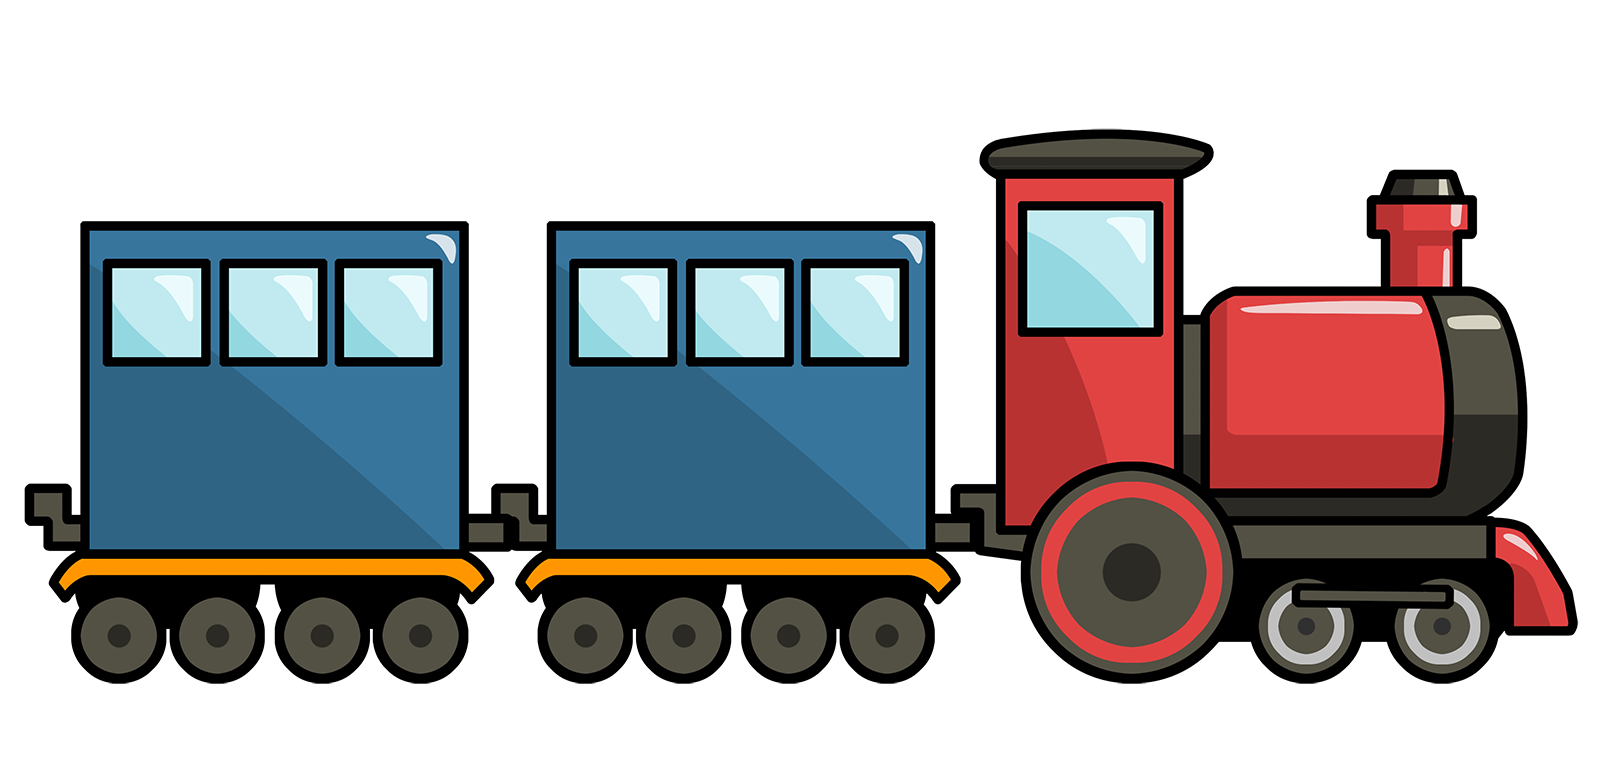 86+ Train Clipart.